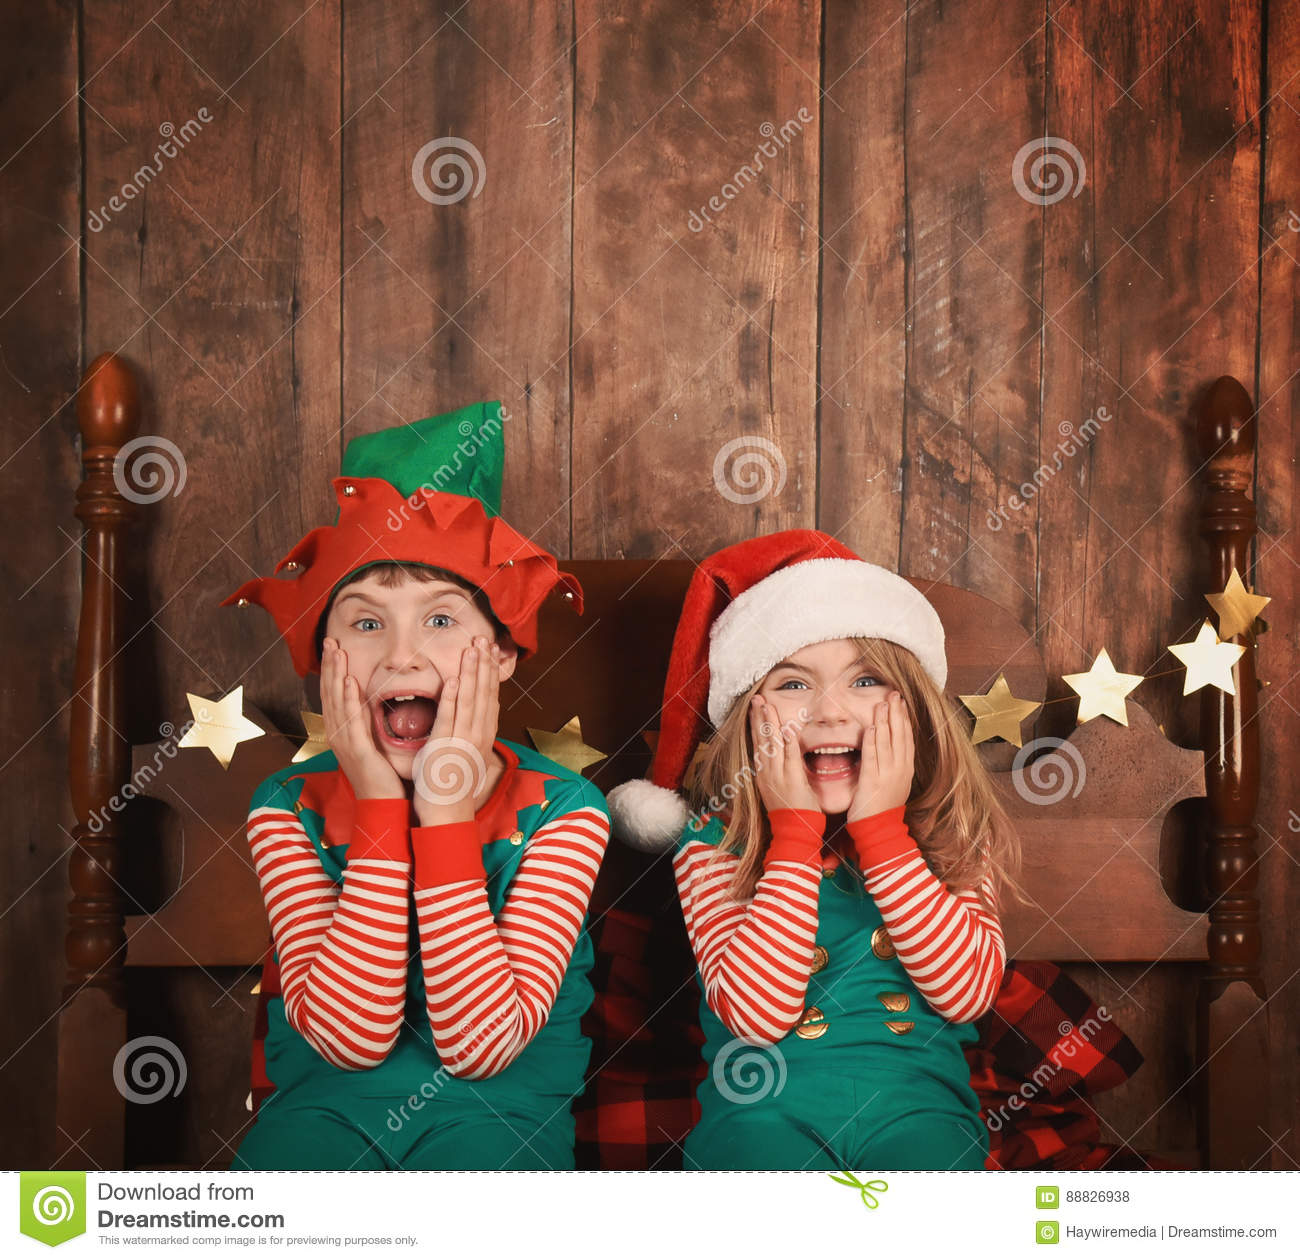 Funny Christmas Kids on Bed with Hats